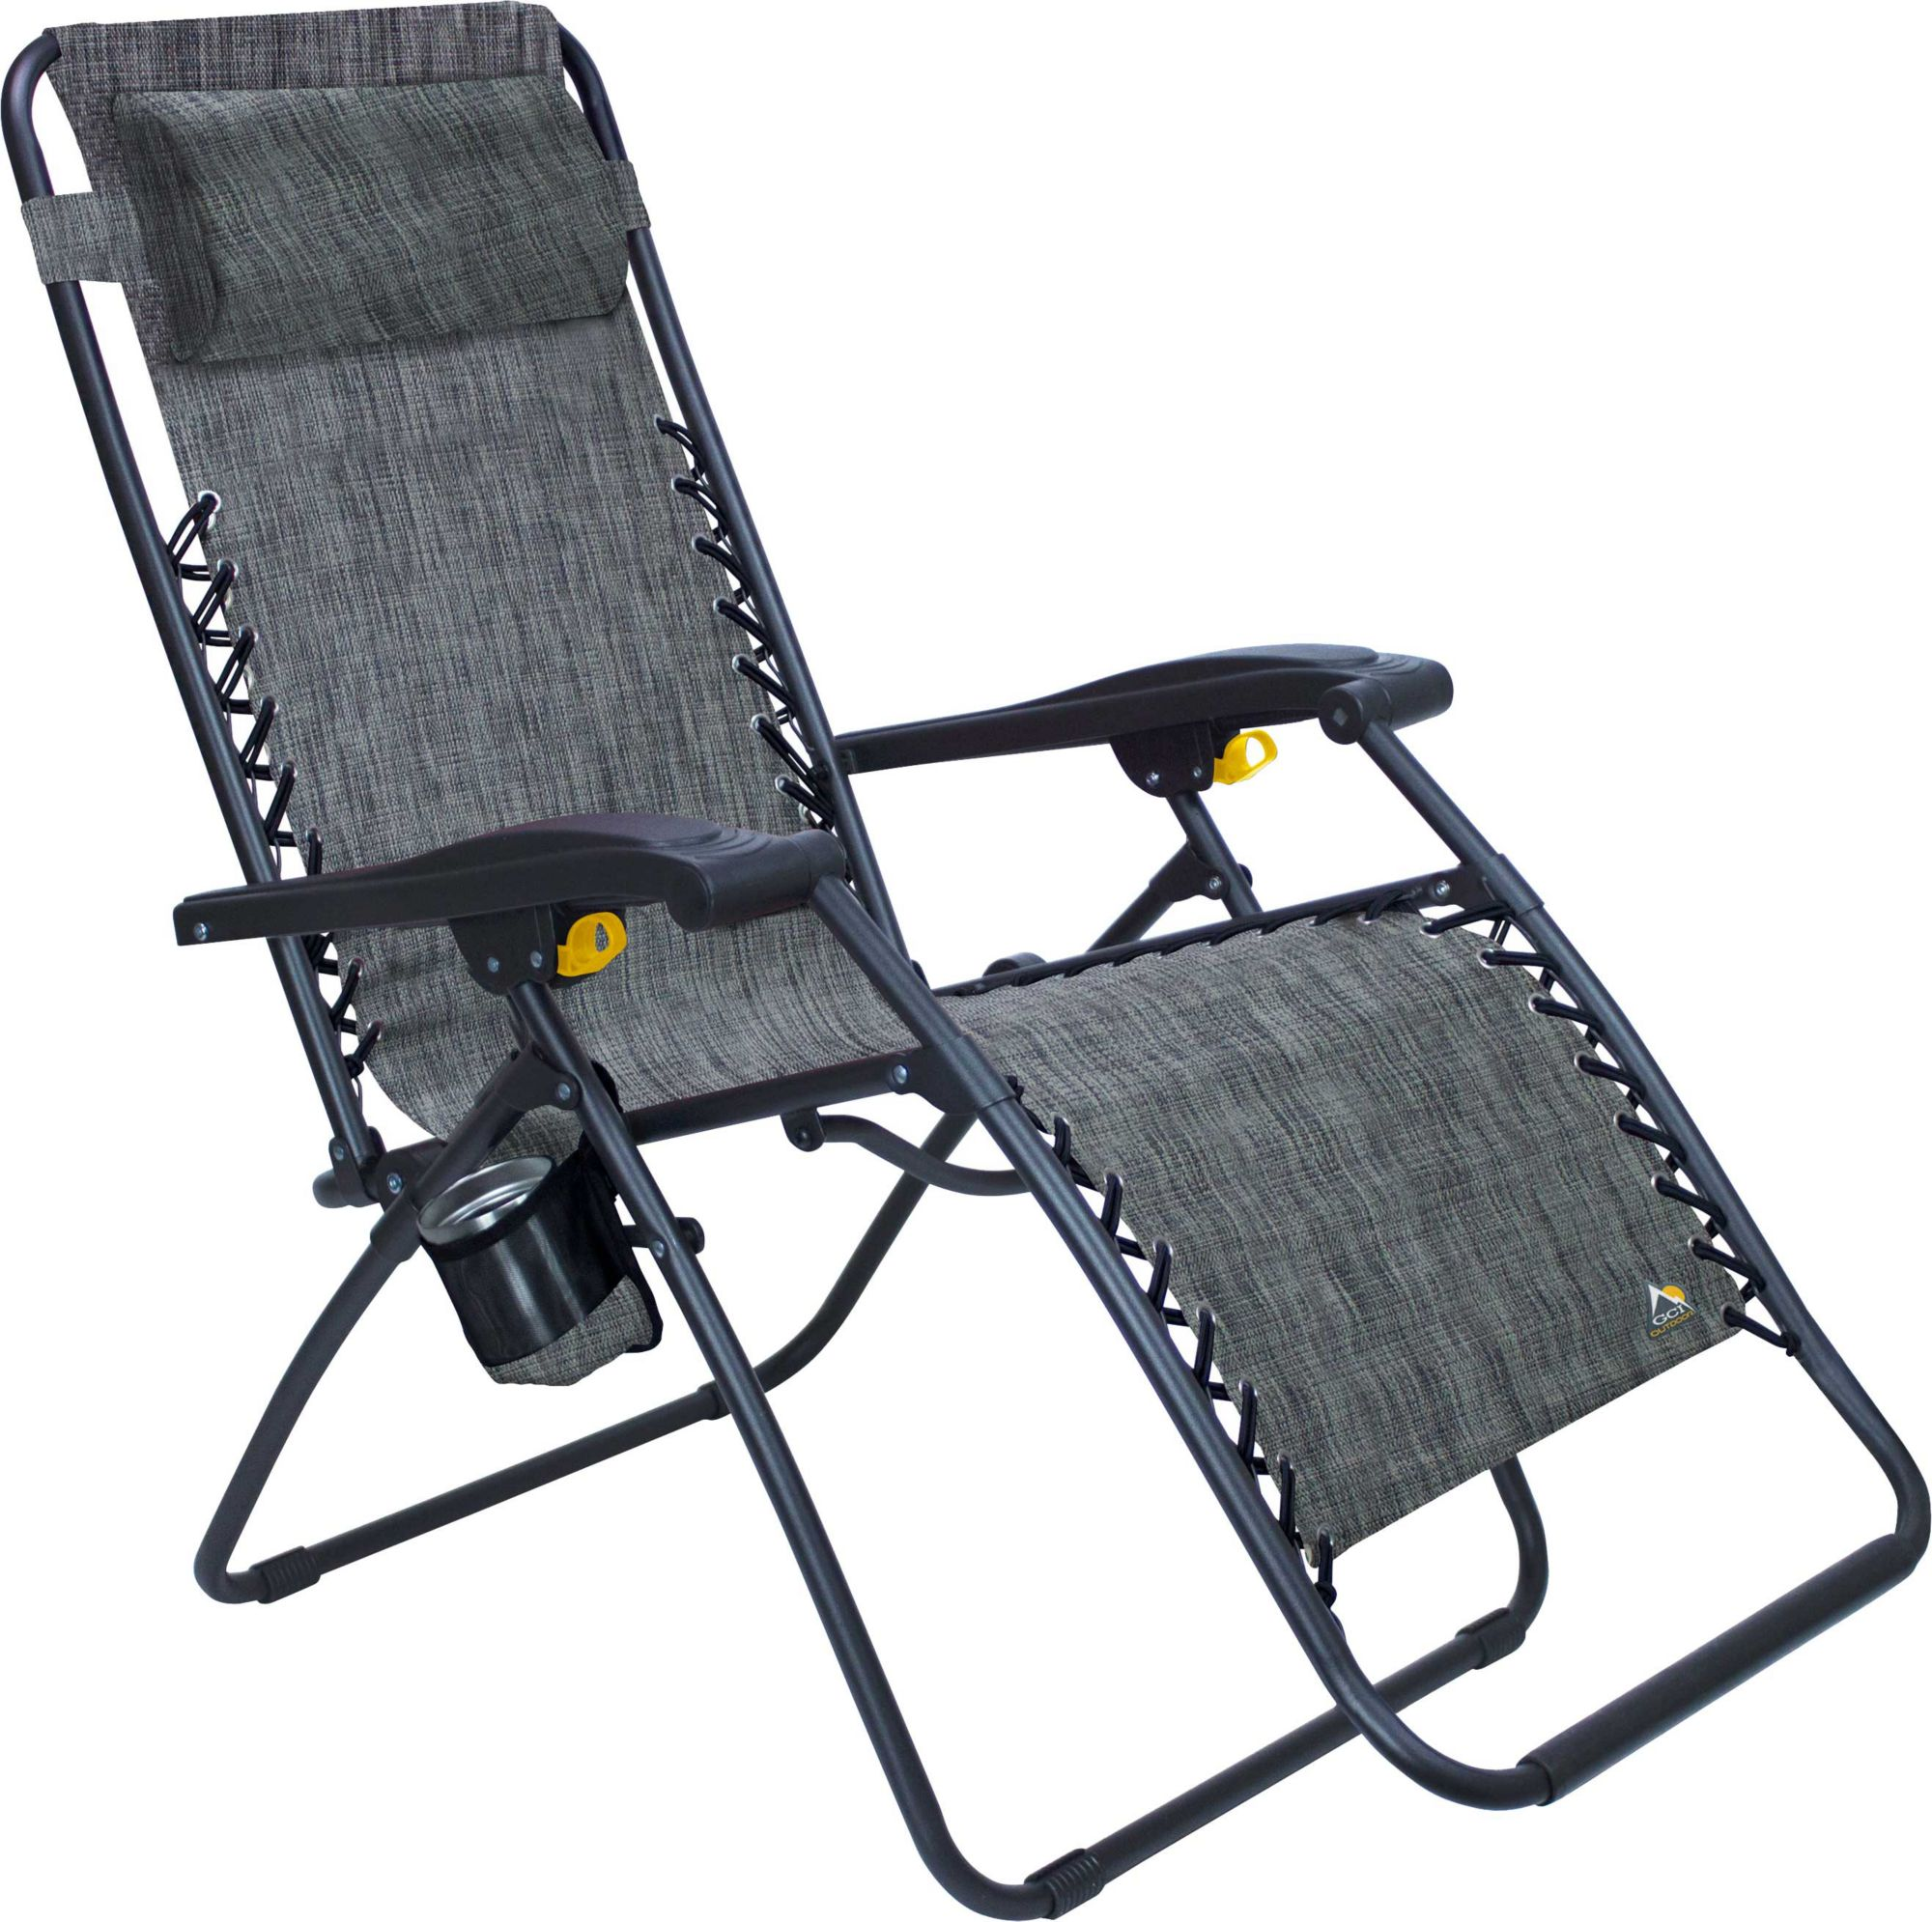 Exellent Reclining Camping Chairs Chair In Design